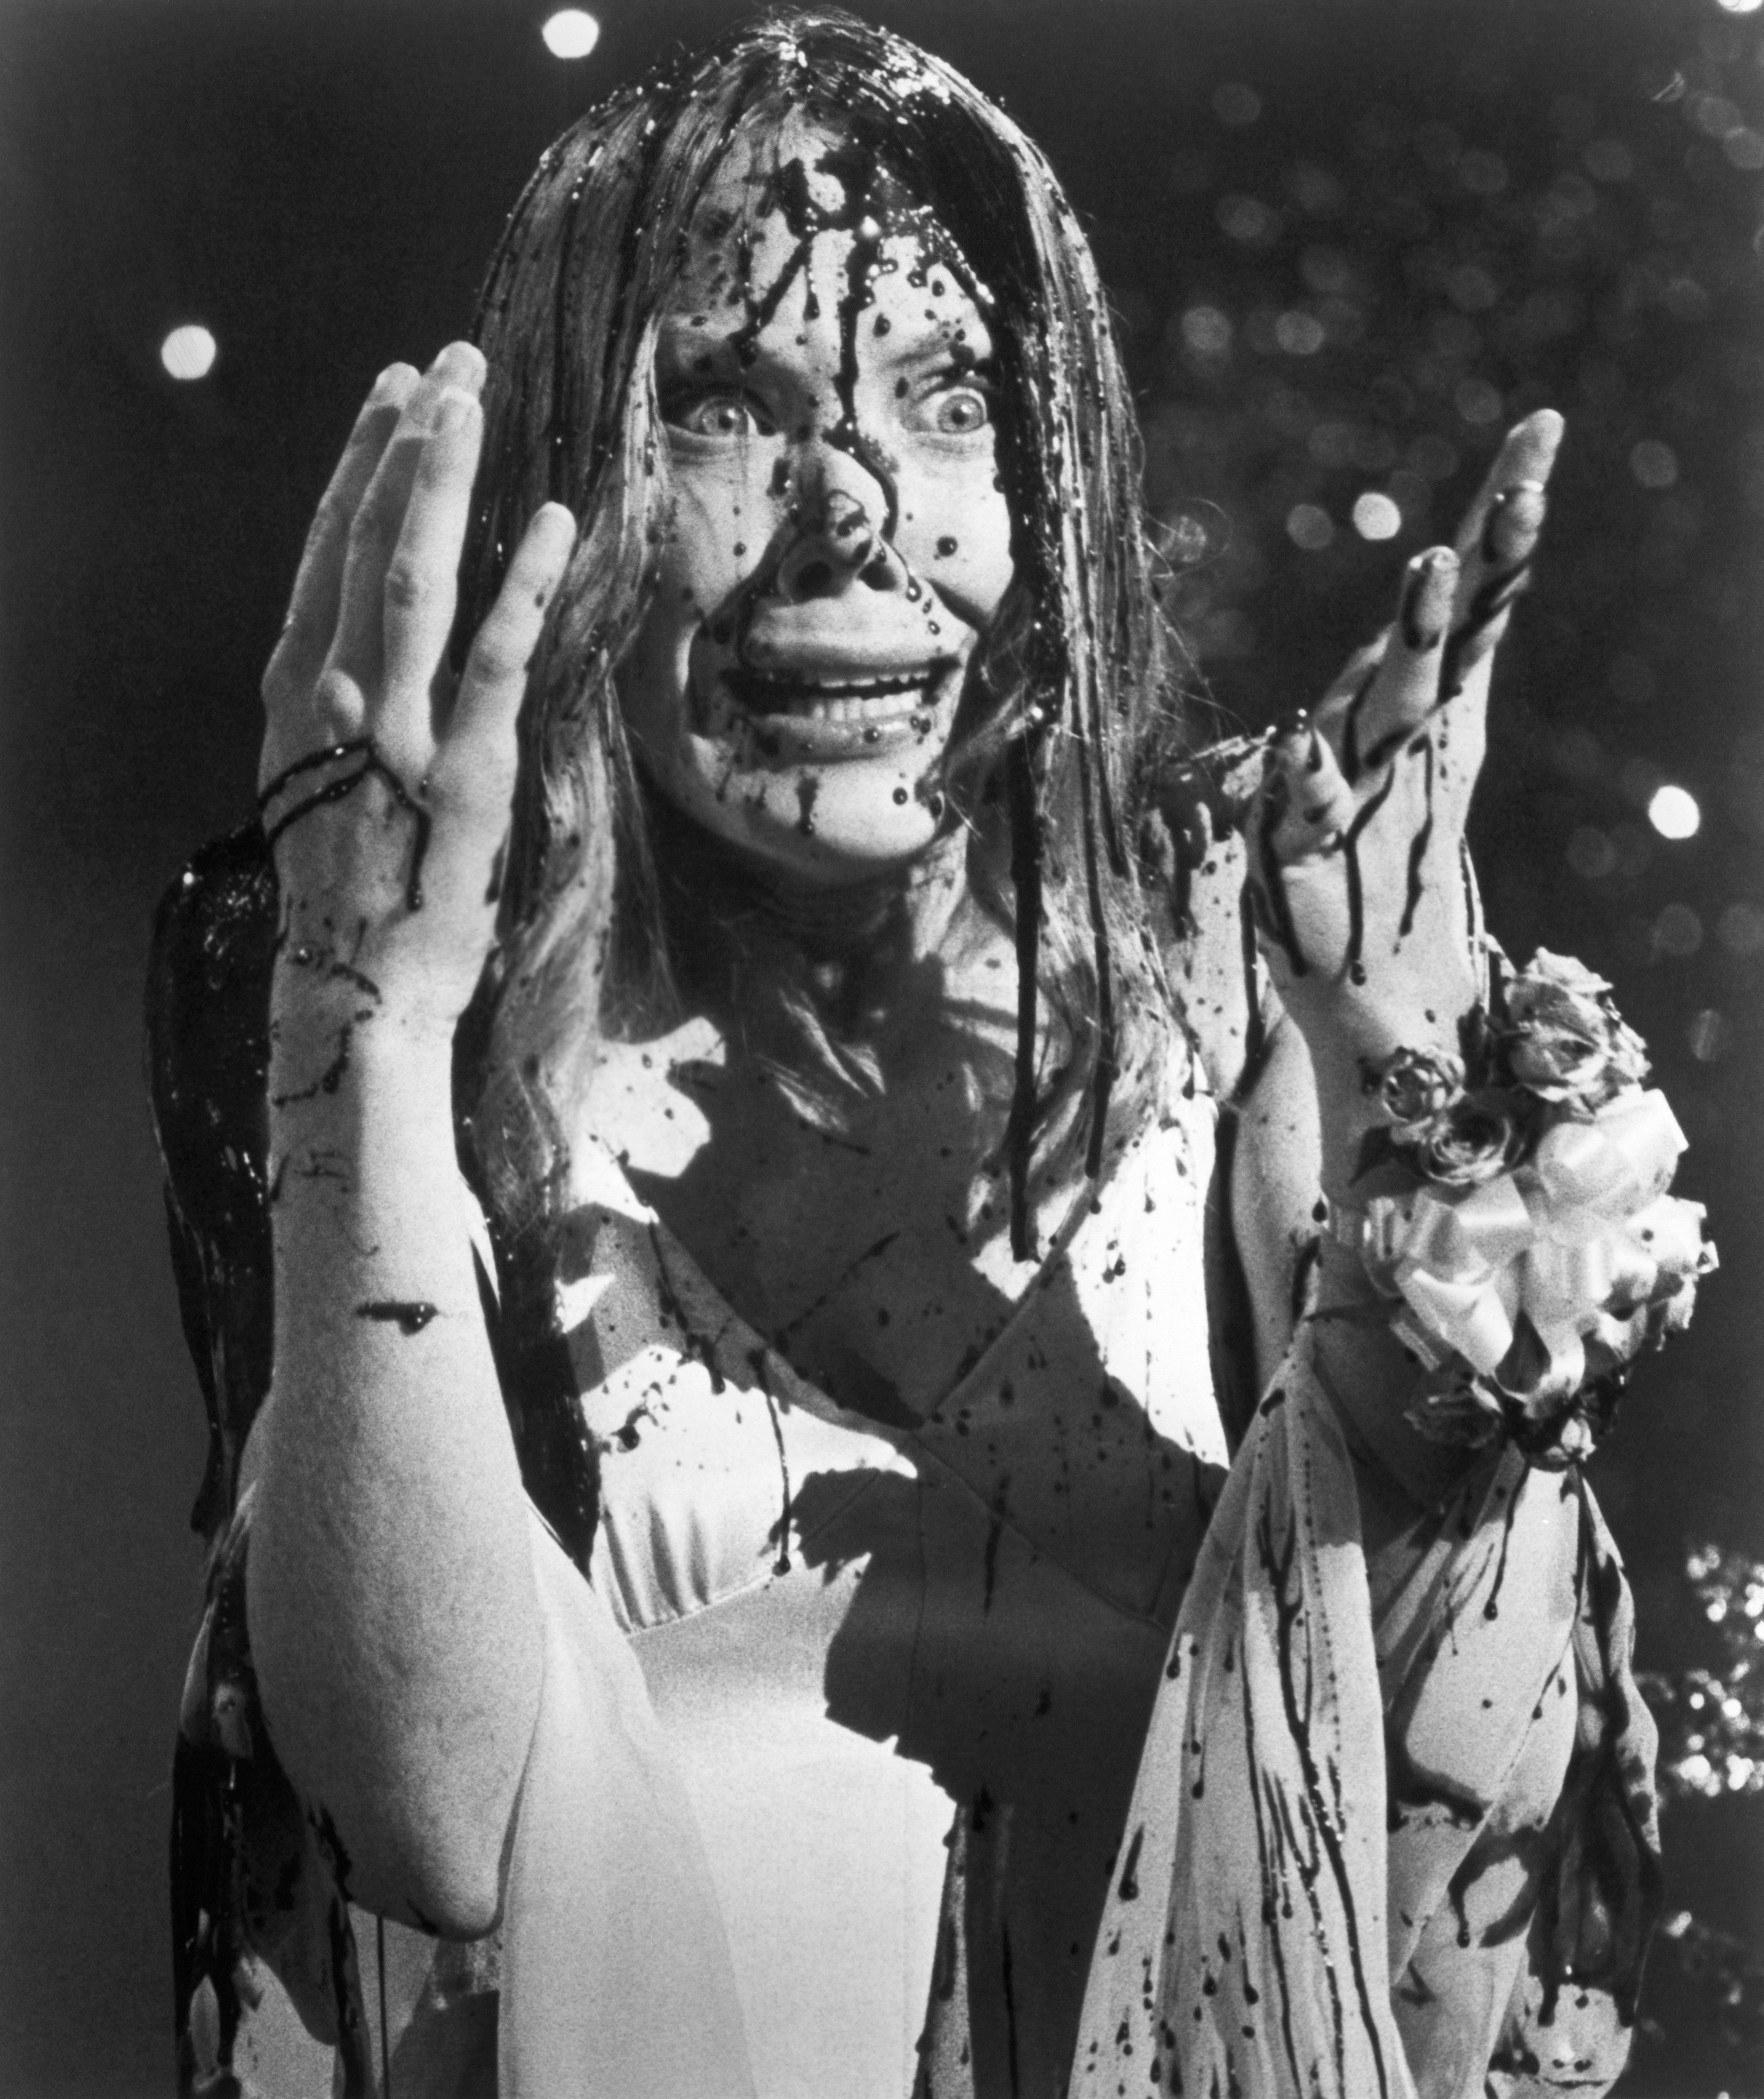 Sissy Spacek attends her high school prom in the Brian De Palma horror  classic 'Carrie' based on the Stephen King novel in 1976 in Los Angeles,  California.